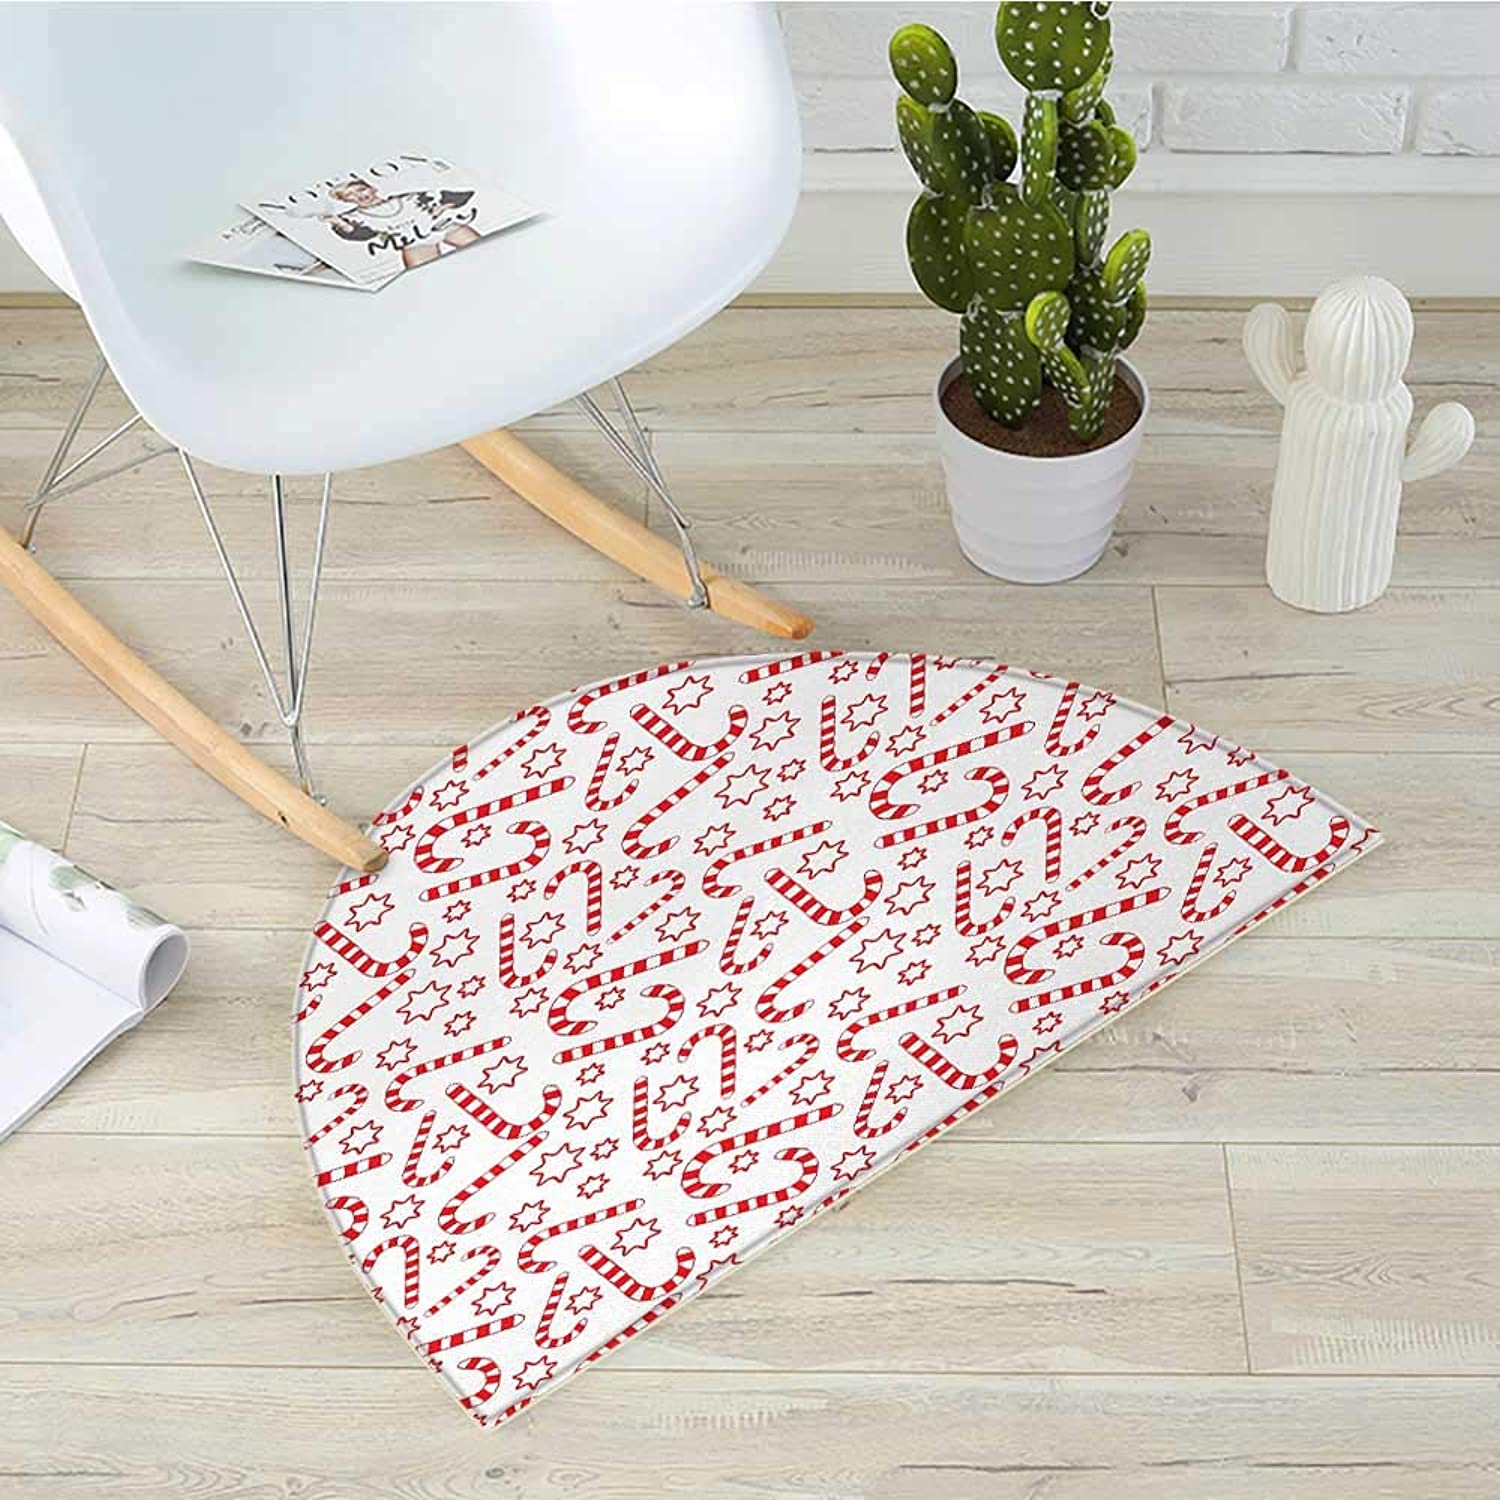 Candy Cane Half Round Door mats Illustration of Xmas Themed Figures Traditional Candies and Stars Seasonal Bathroom Mat H 39.3  xD 59  Vermilion White